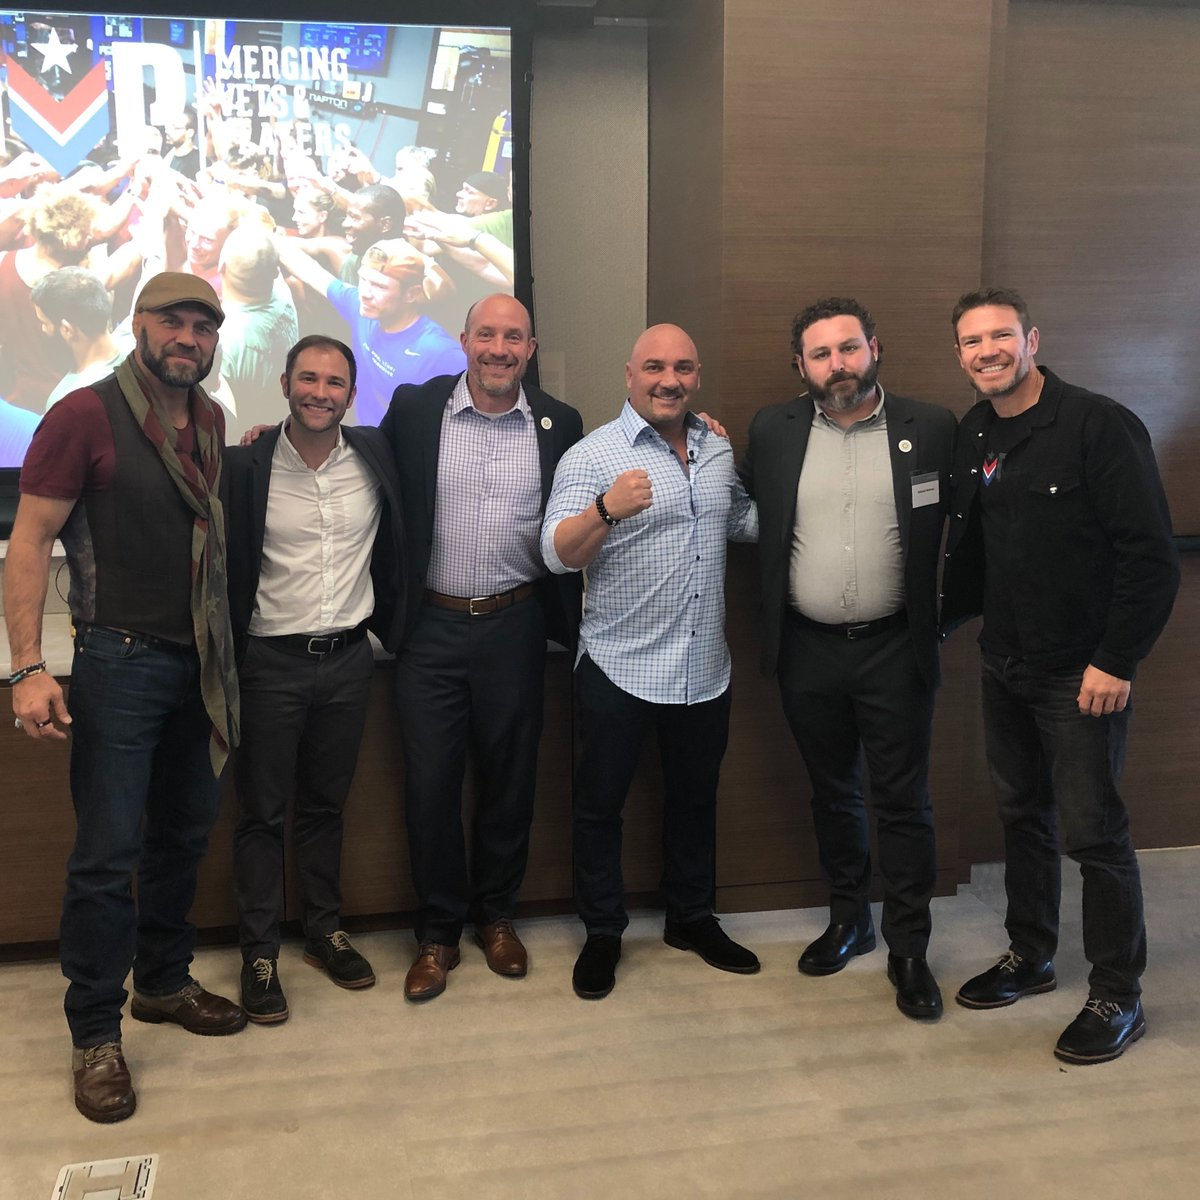 Thanks @jacobtoups and @VetsandPlayers for an inspiring lunch today with @NateBoyer37, @JayGlazer and @Randy_Couture! @Stand4Heroes is proud to work with you as an NFL-BWF Grant Recipient, reinforcing that sense of purpose for our veterans after they take off the uniform.